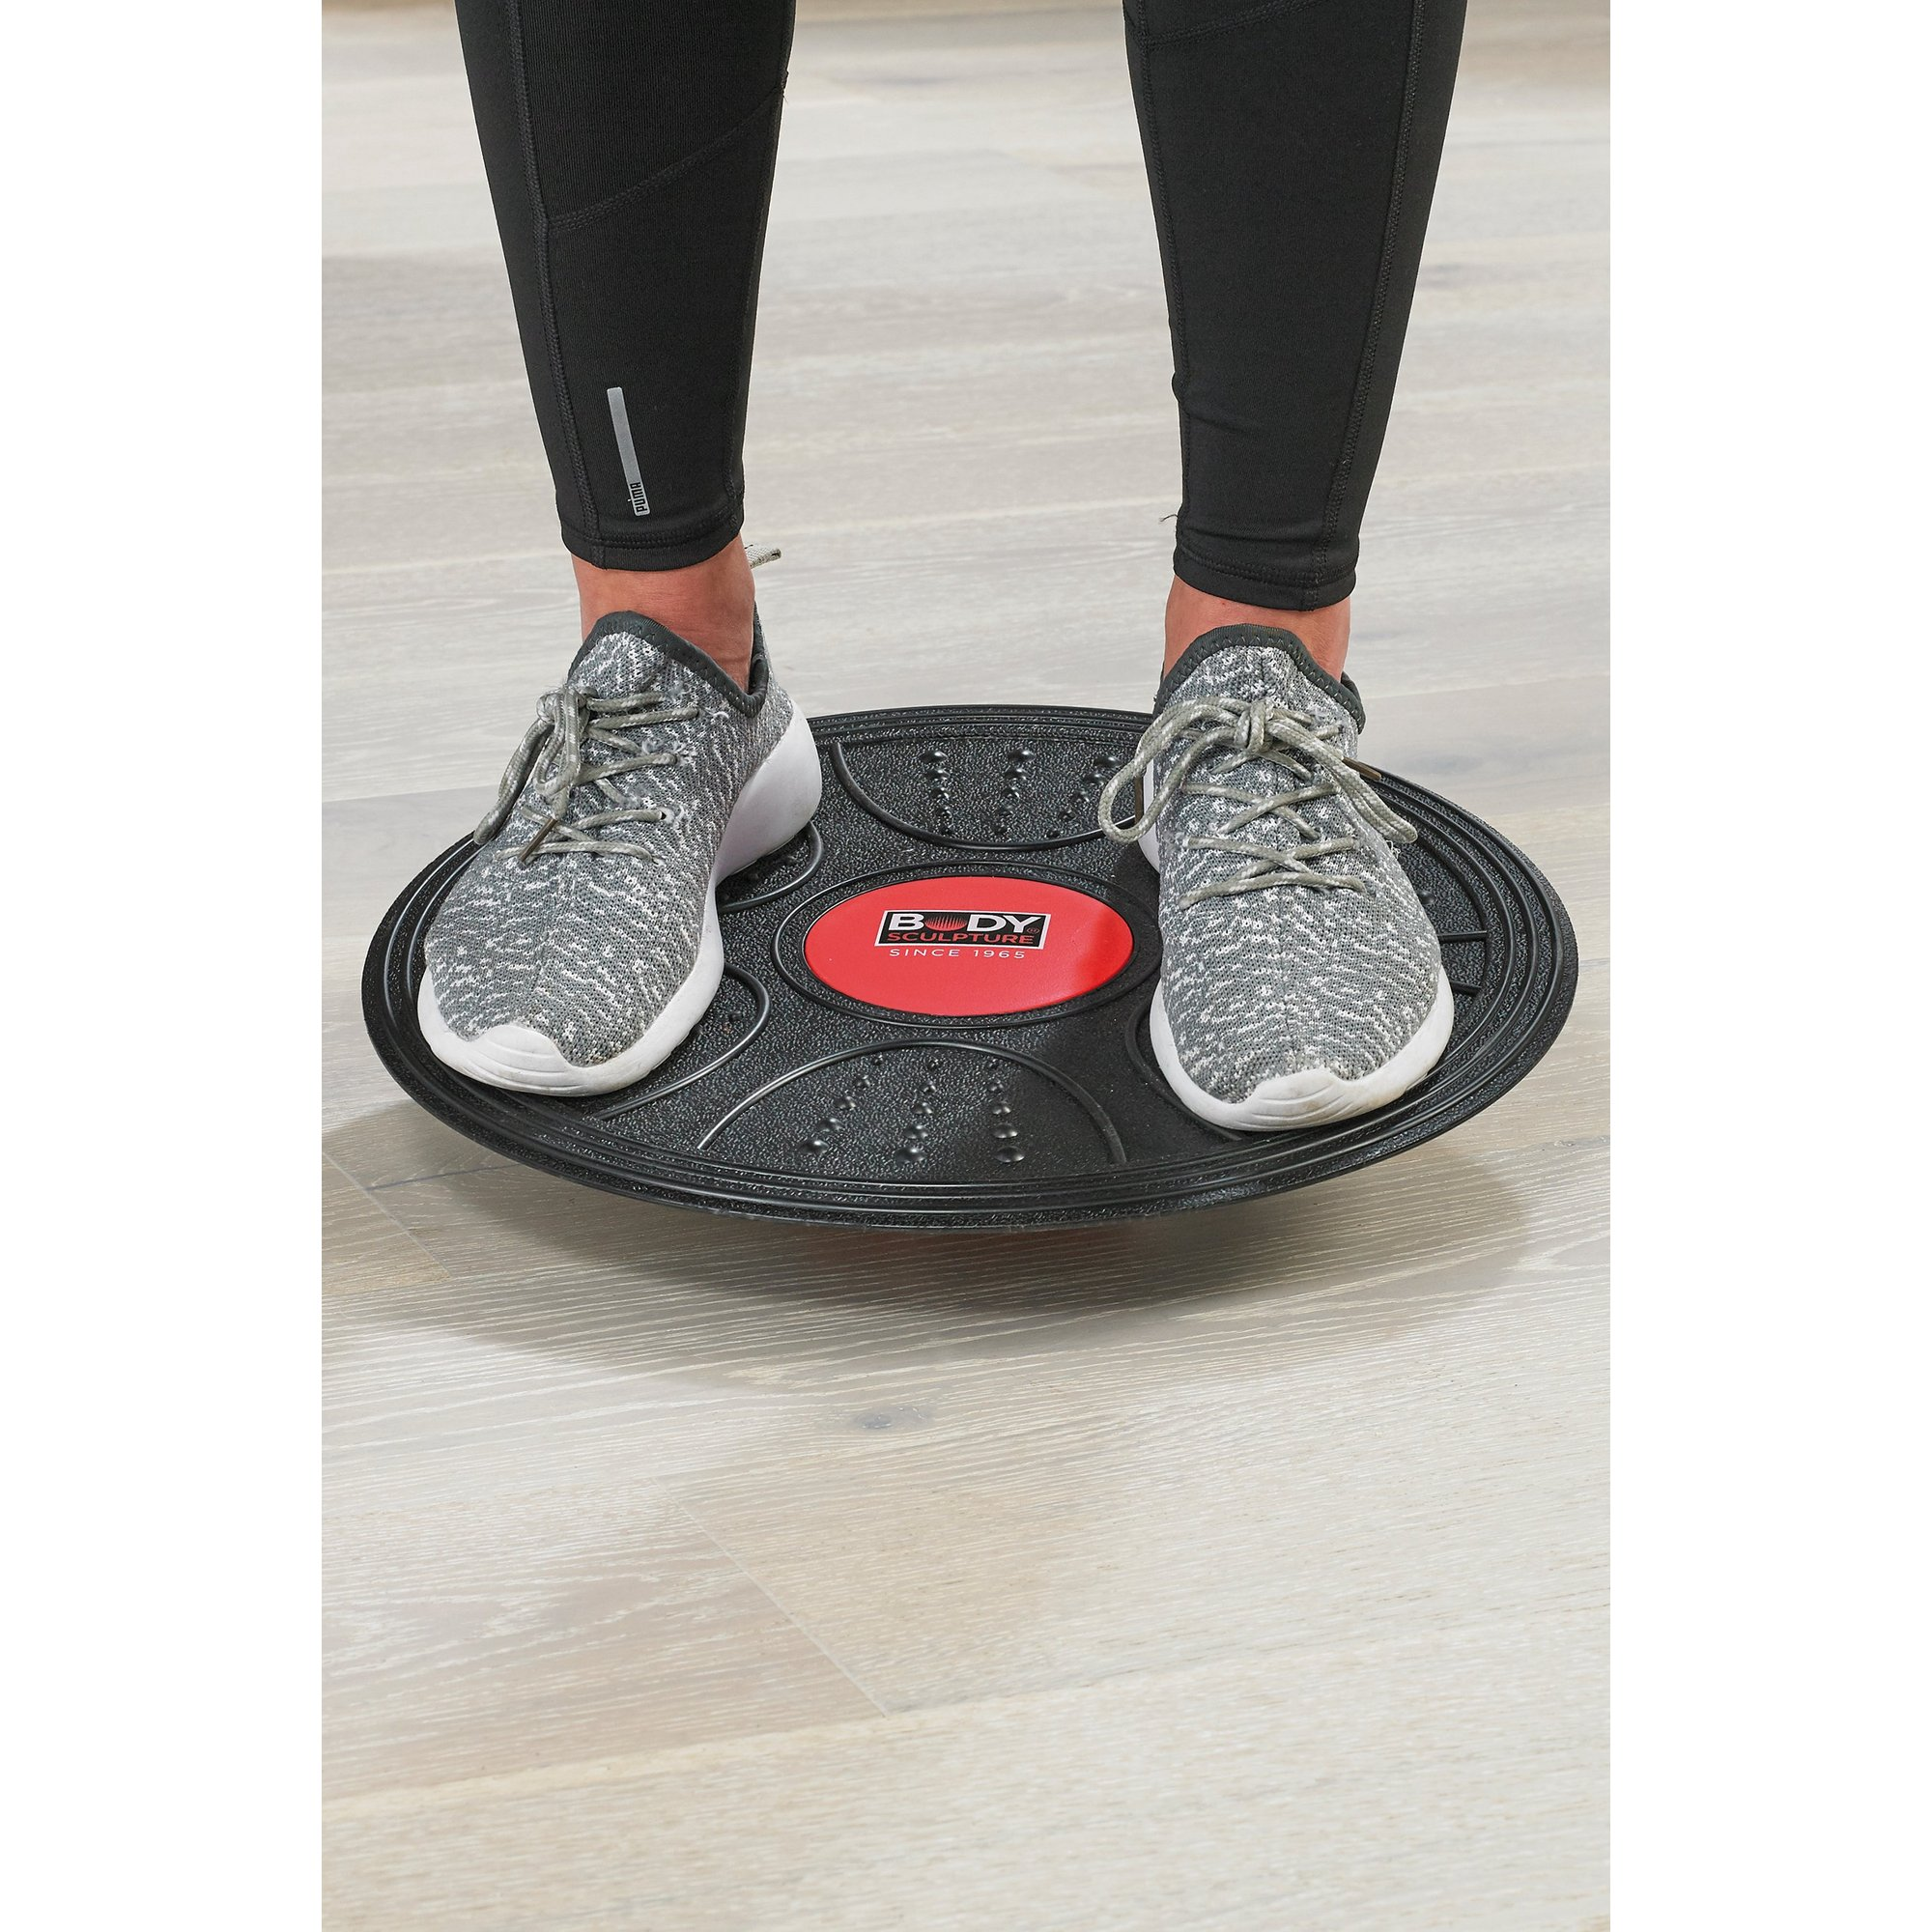 Image of Body Sculpture 3 Heights Adjustable Balance Board